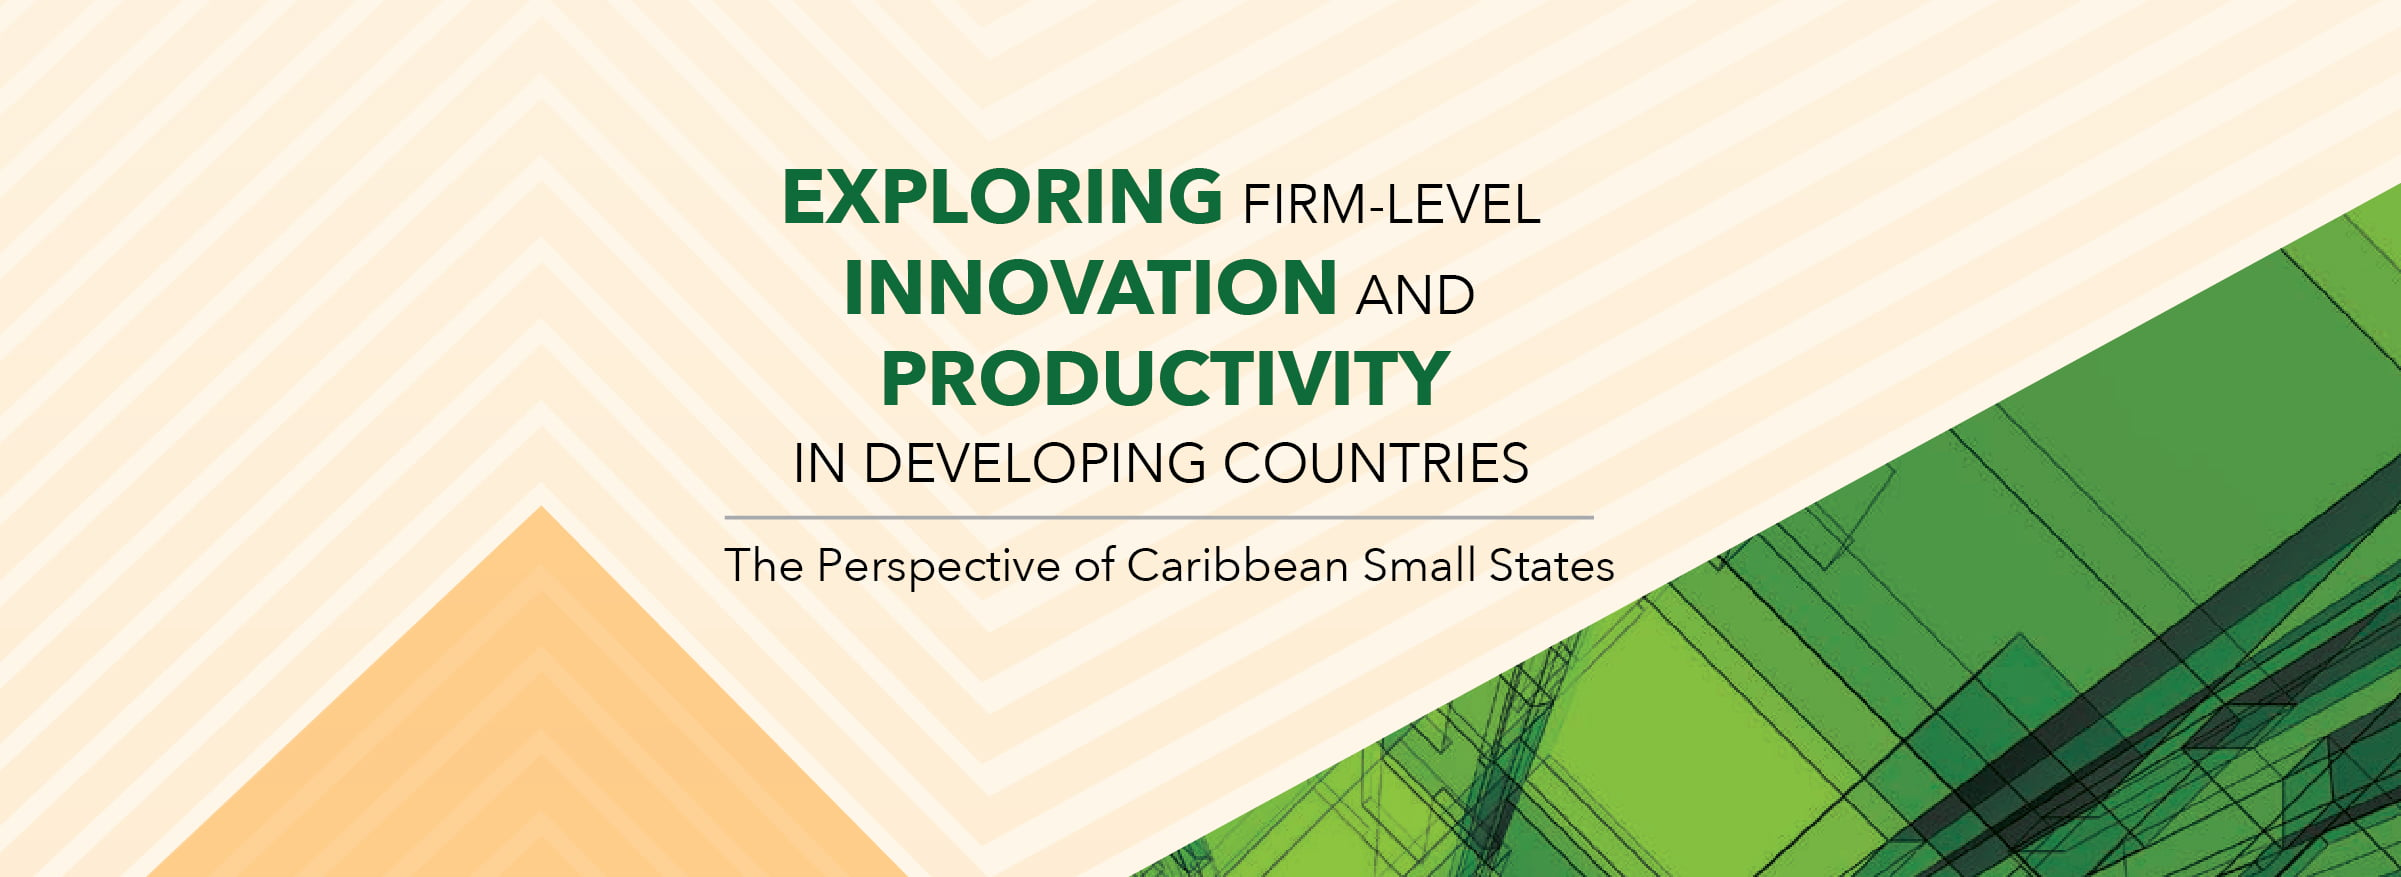 Exploring Firm-Level Innovation and Productivity